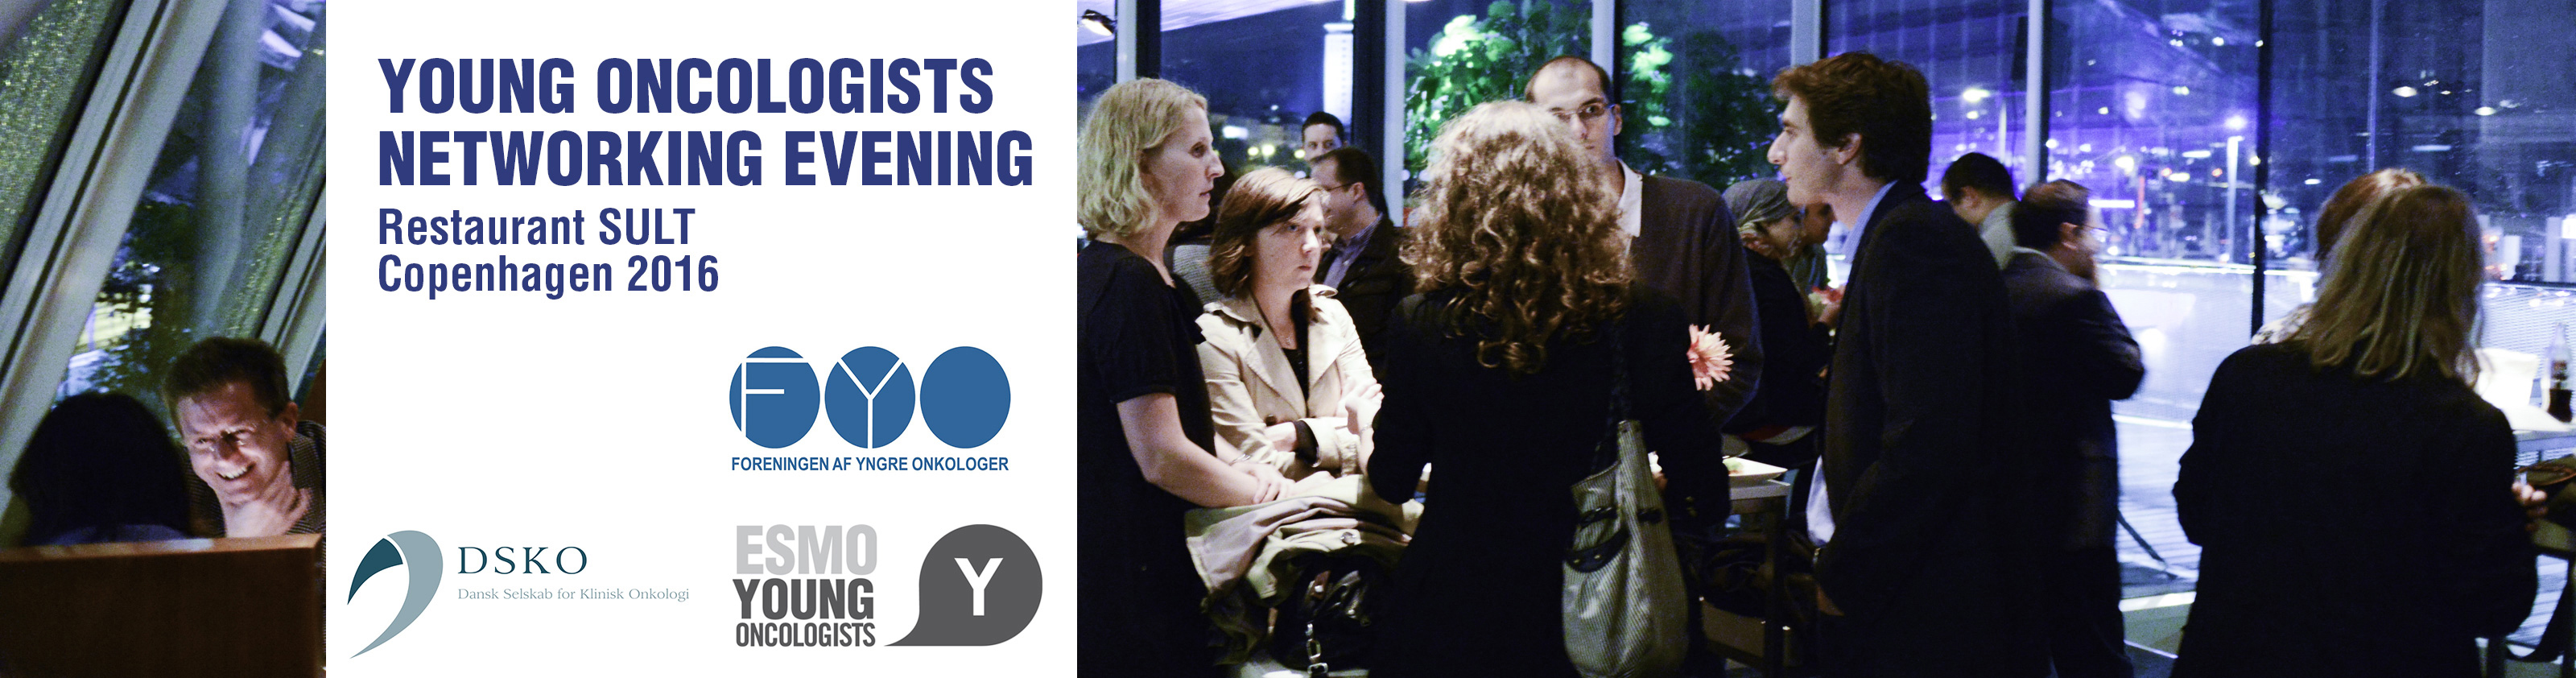 YOC Networking Evening 2016